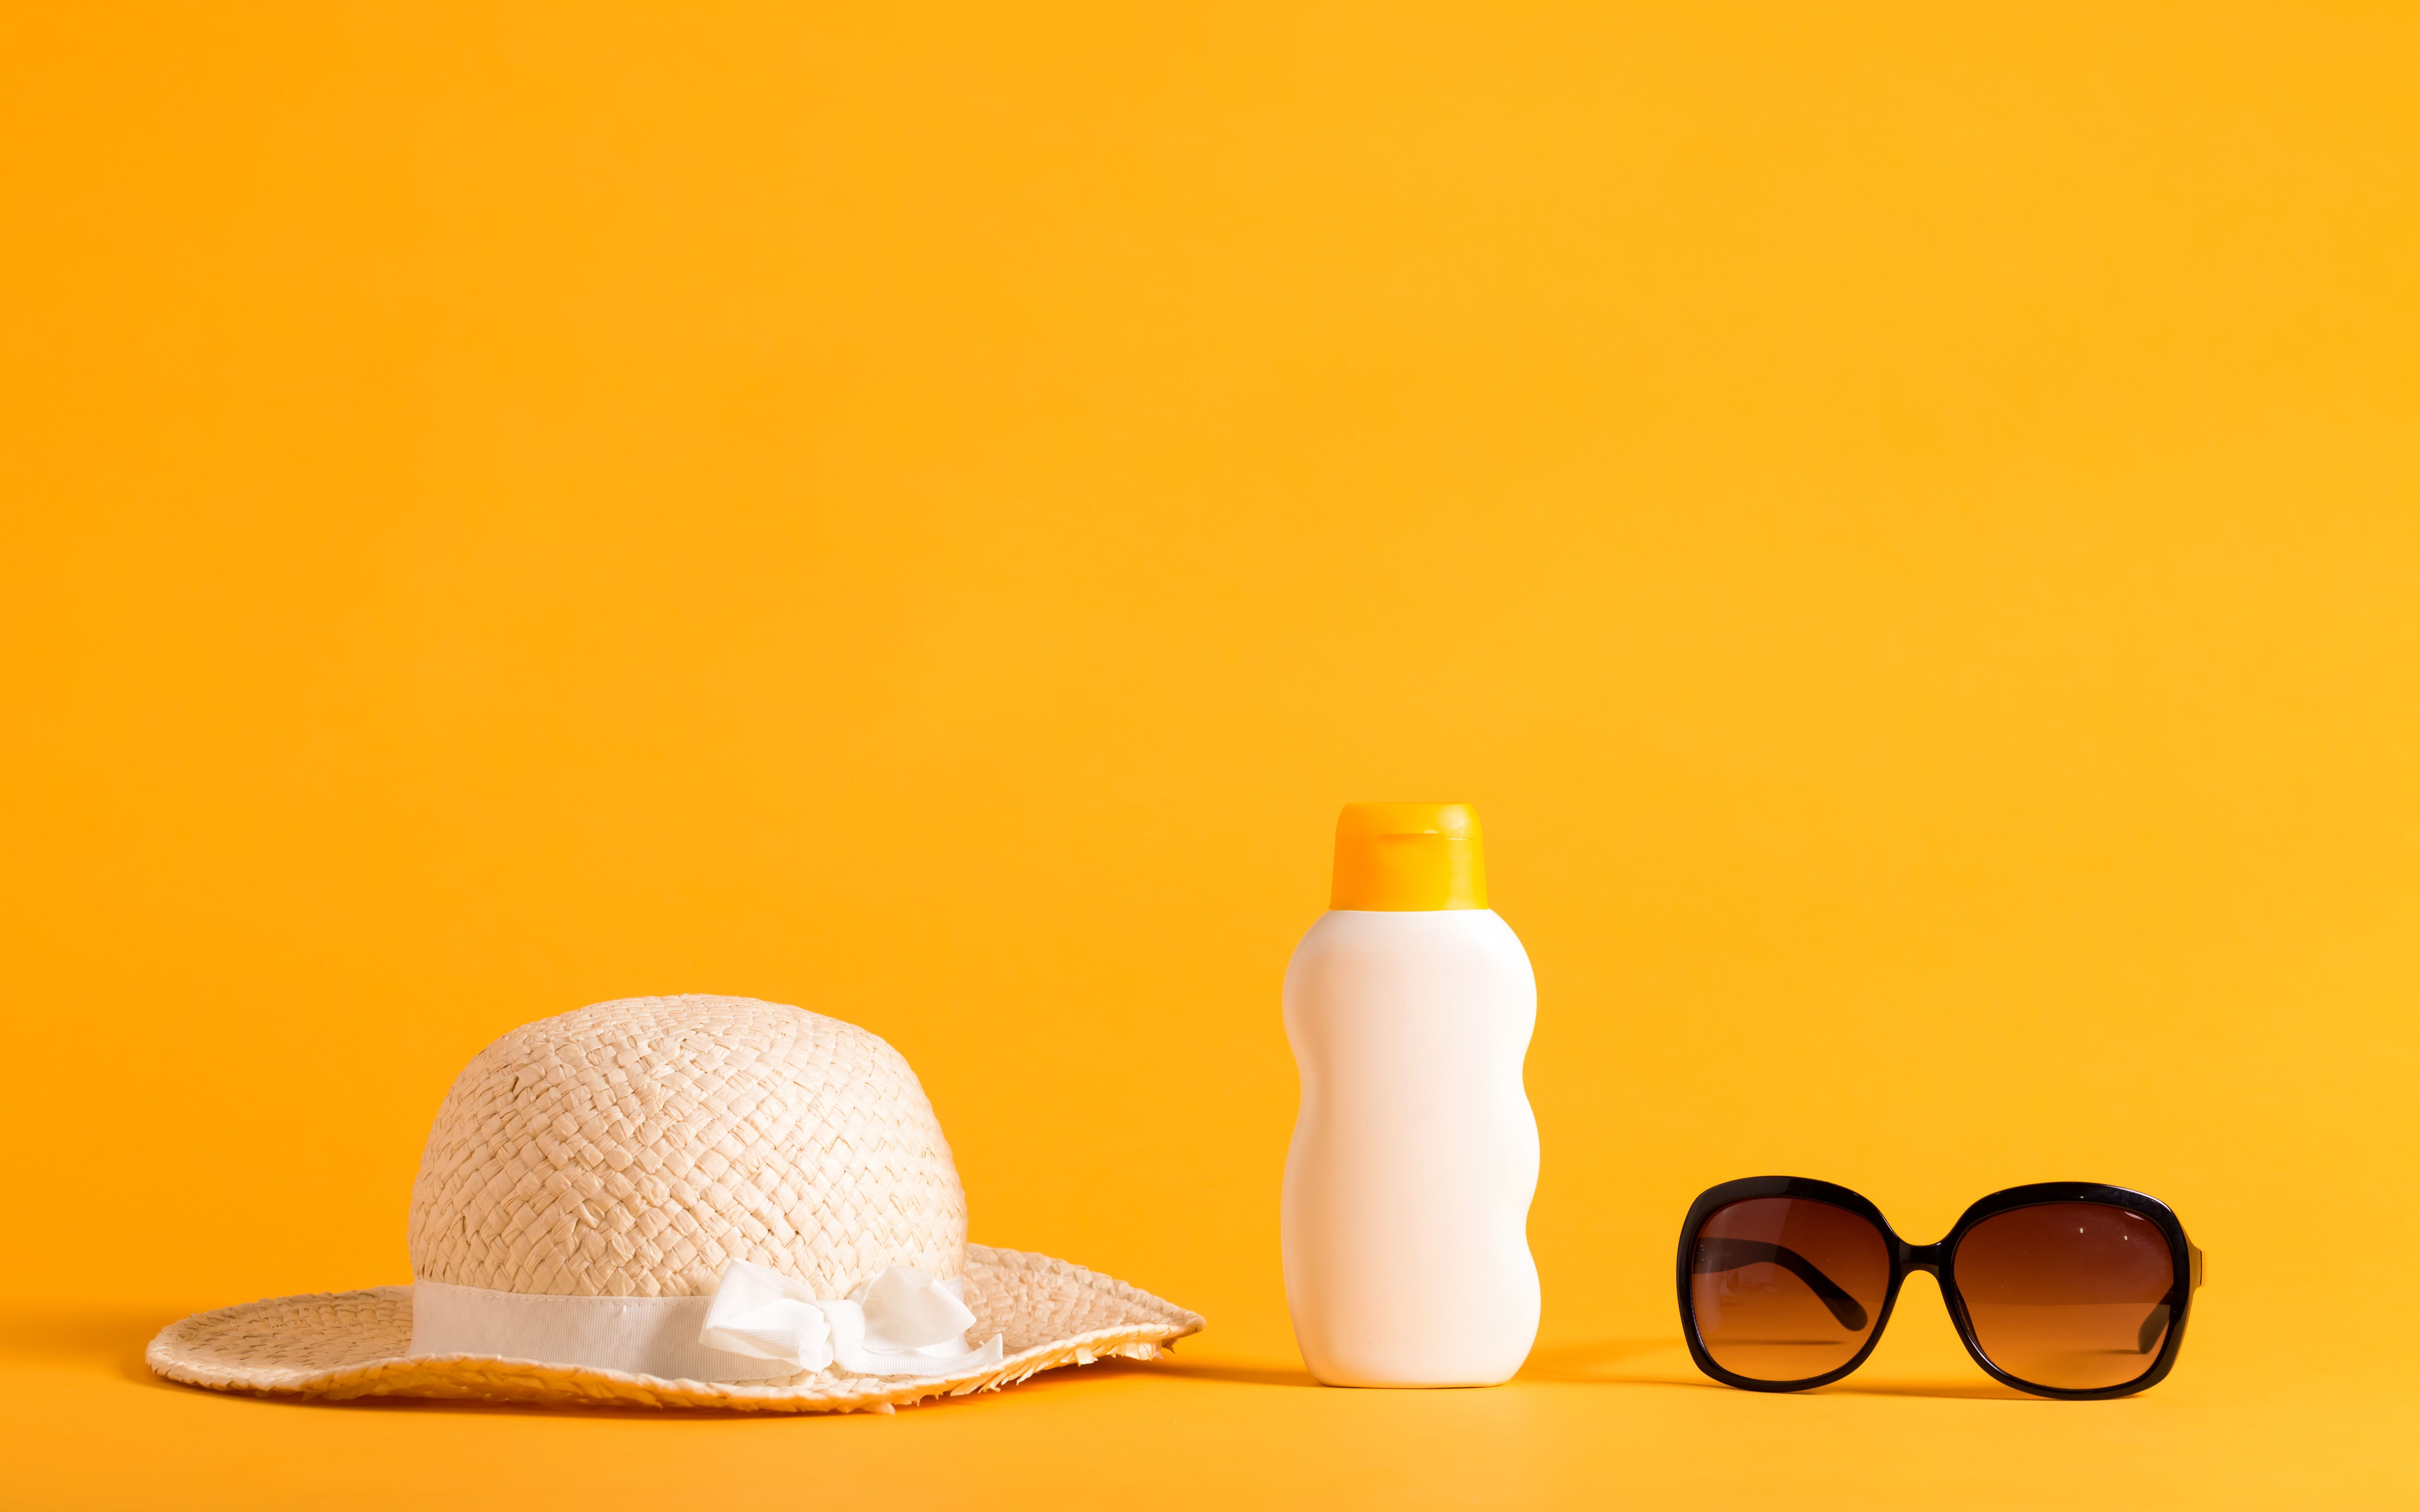 The Sun Care Routine You Need, Based On Your